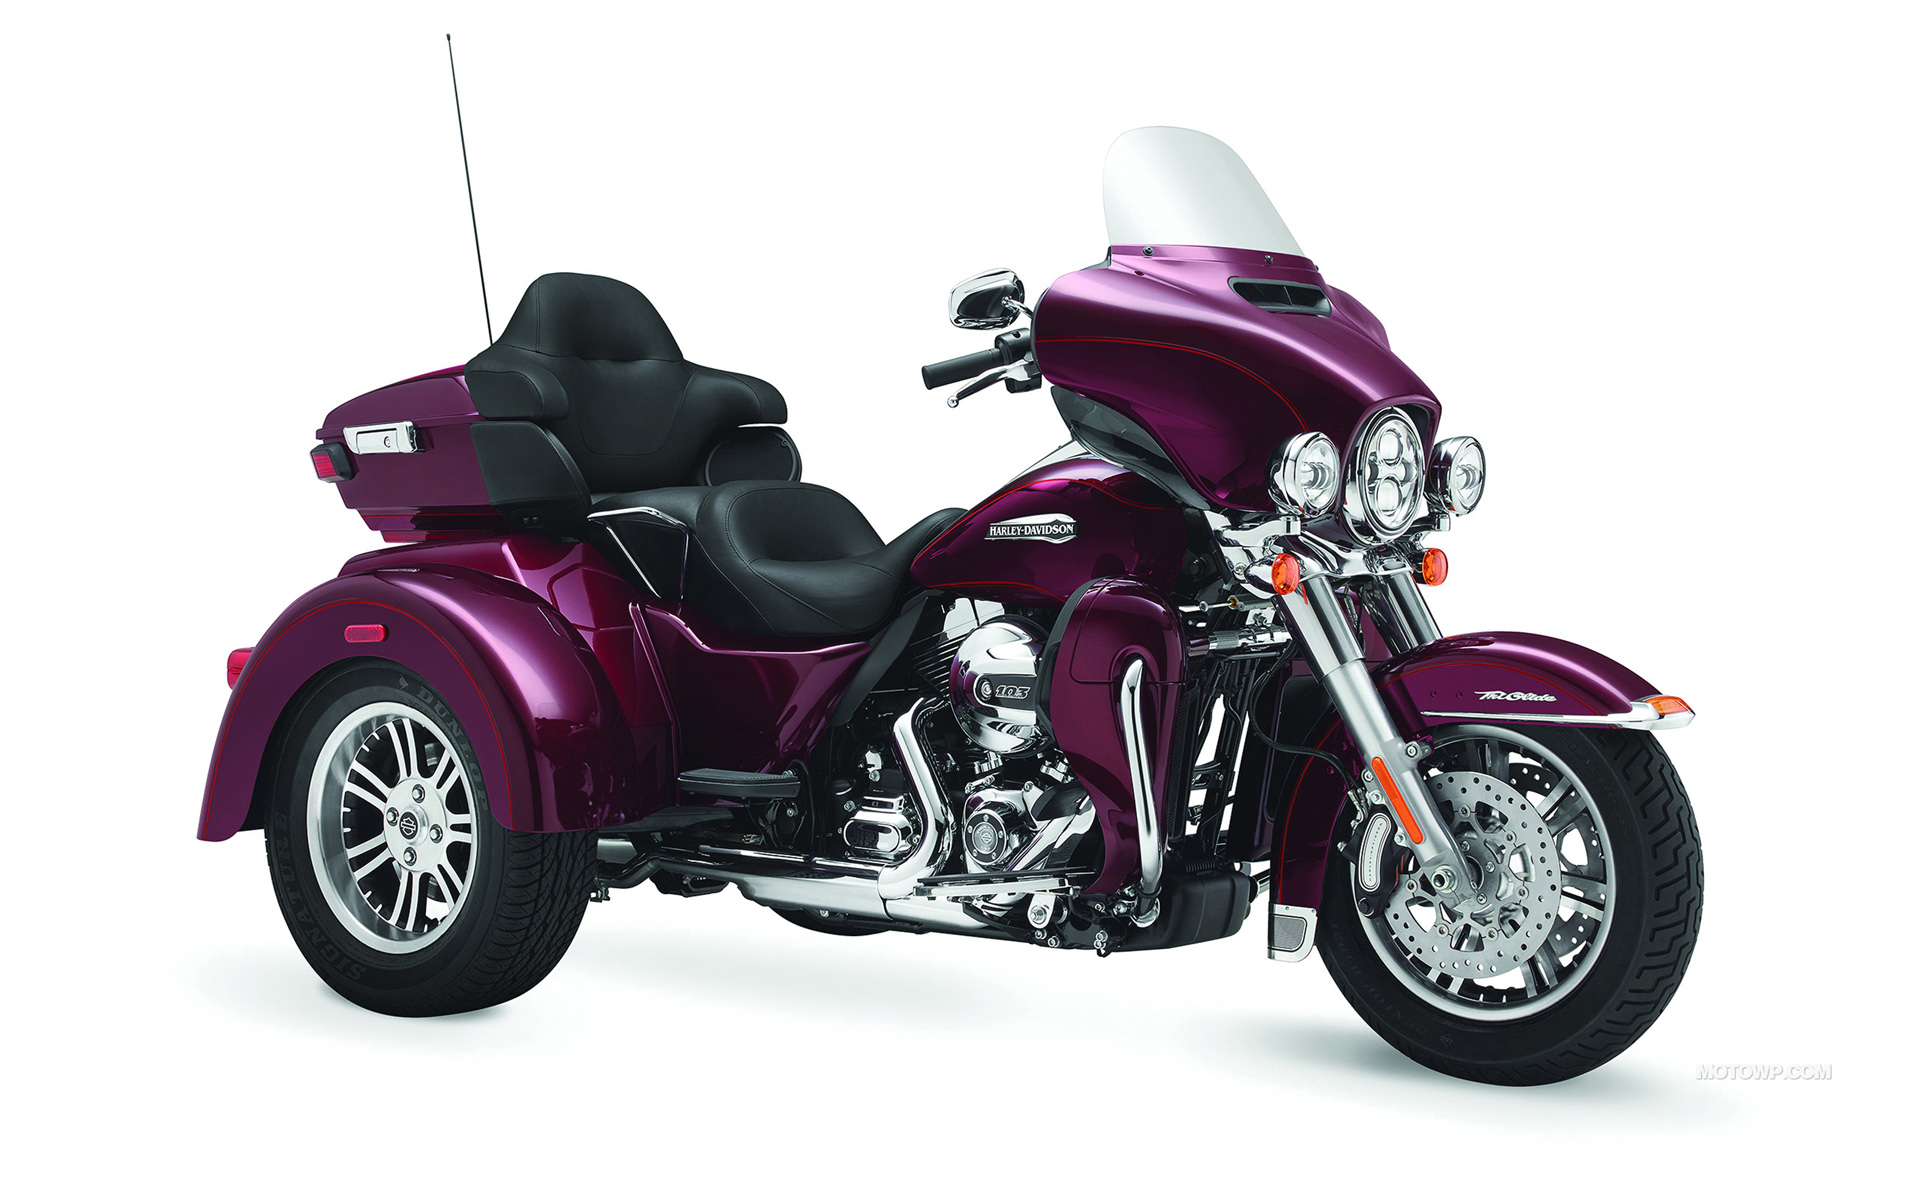 Tri Glide Wallpaper: Motorcycles Desktop Wallpapers Harley-Davidson Trike Tri